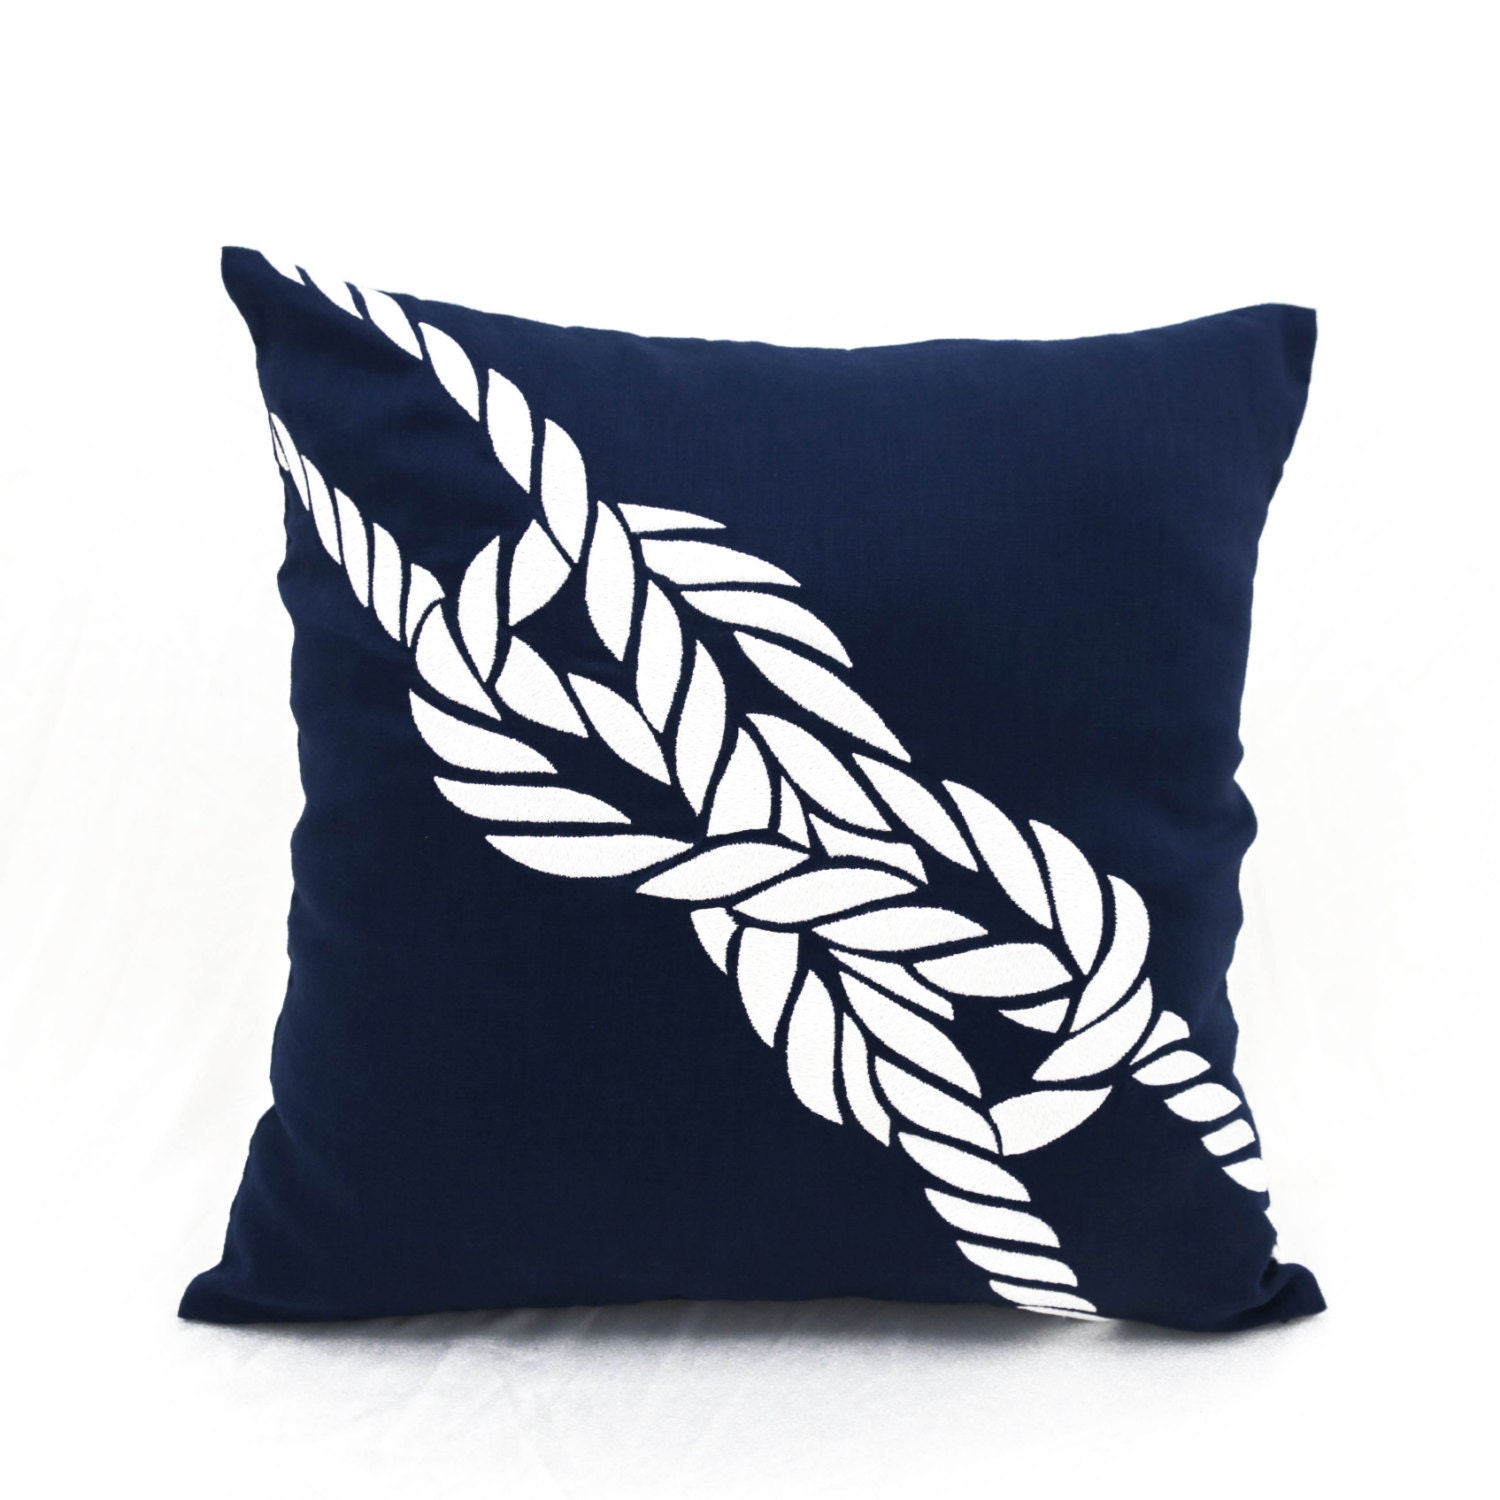 Throw Pillows Nordstrom : Navy Throw pillow Rope Pillow Nautical pillow covers